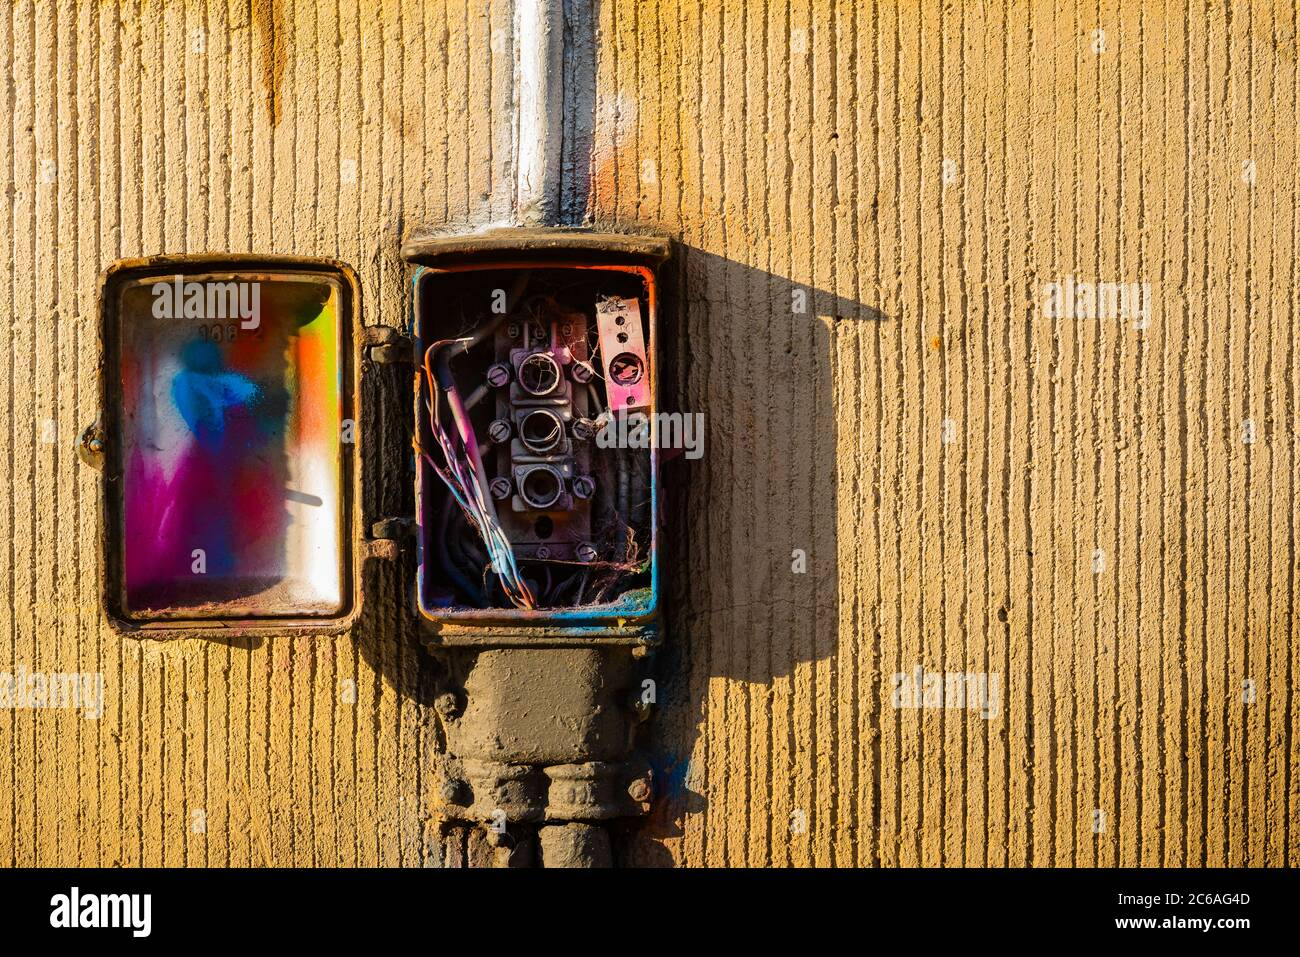 Old fuse box for street lighting, smeared old fuse box, Fuse box on a house wall Stock Photo